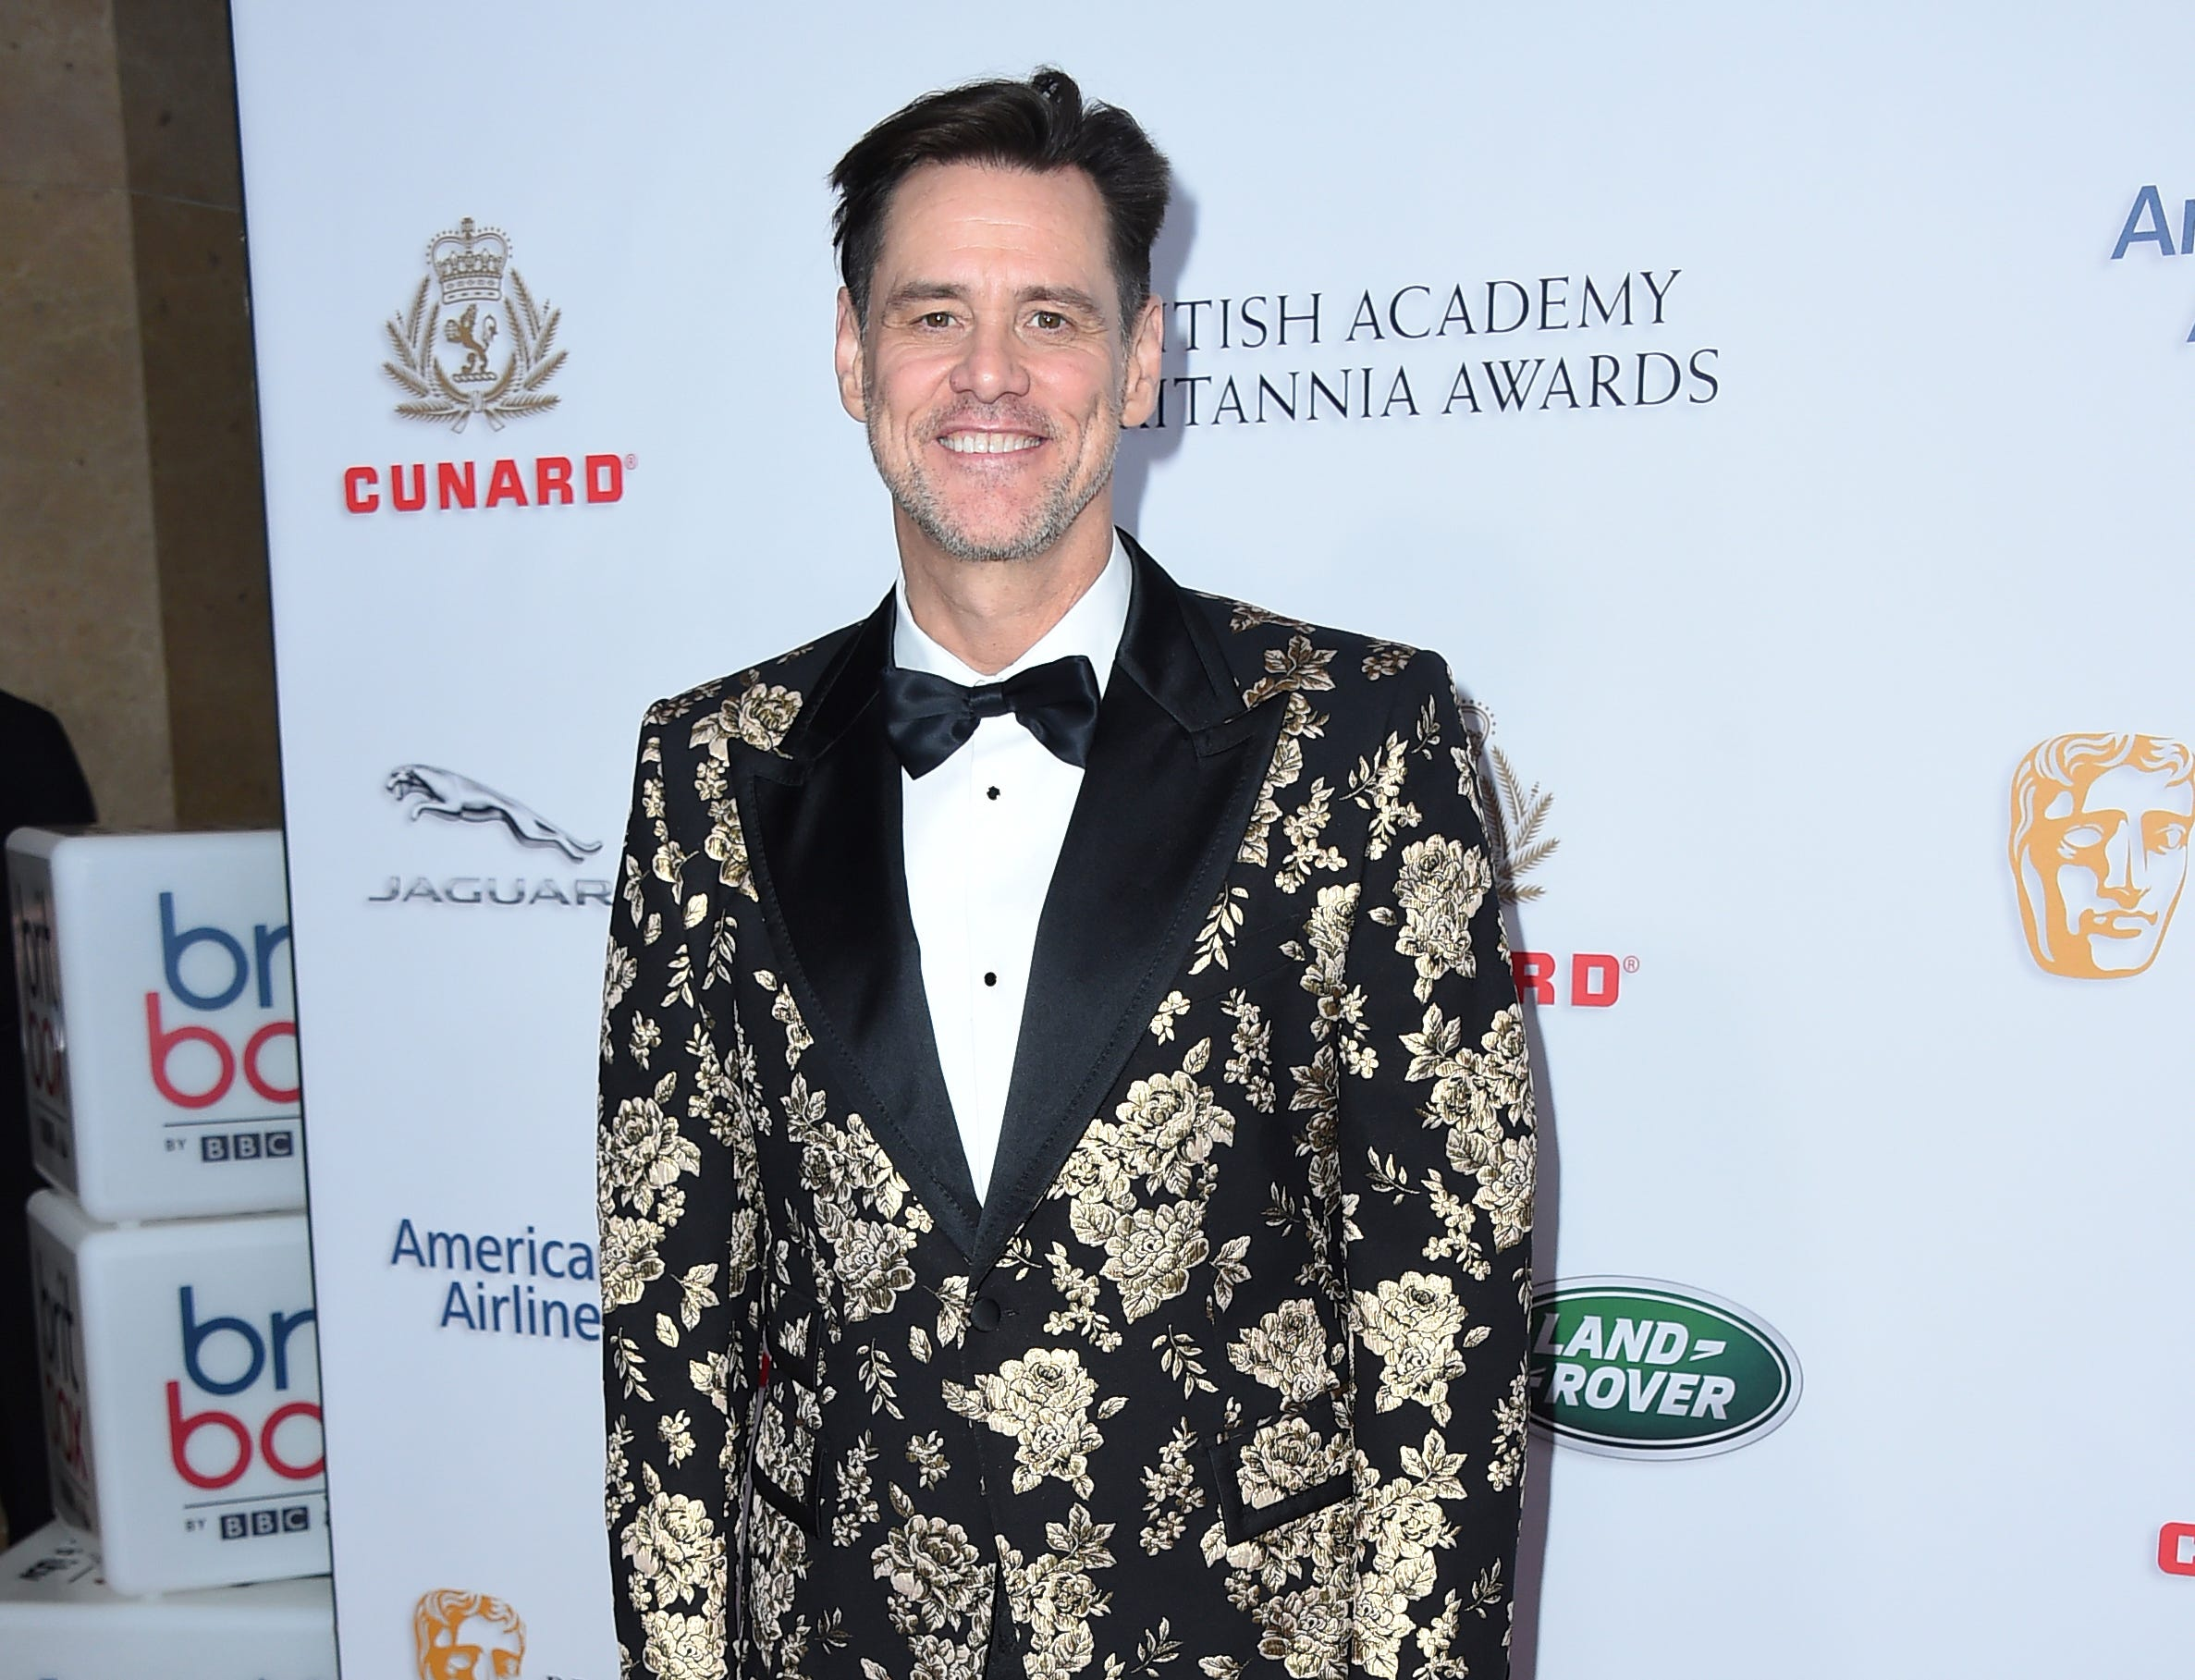 Jim Carrey recently made a political statement via Twitter that favored O'Rourke. Here he is arriving at the 2018 BAFTA Los Angeles Britannia Awards at the Beverly Hilton on Friday, Oct. 26, 2018, in Beverly Hills, Calif. (Photo by Jordan Strauss/Invision/AP) ORG XMIT: CANS6461